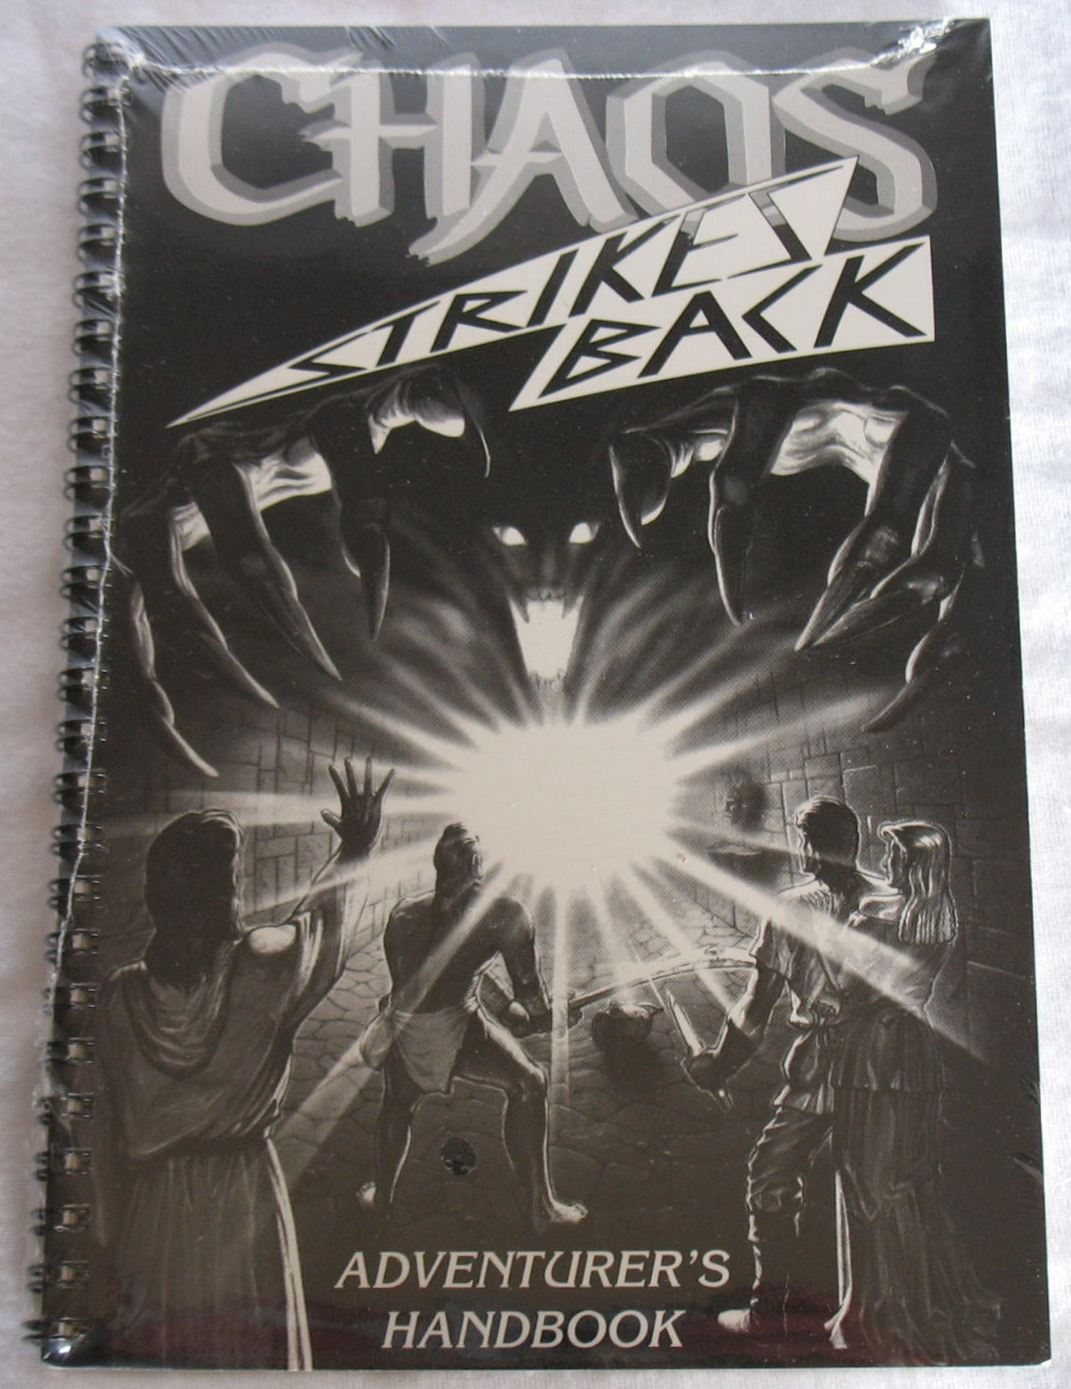 Hint Book - Chaos Strikes Back Adventurer's Handbook - US - All - Overview - Photo